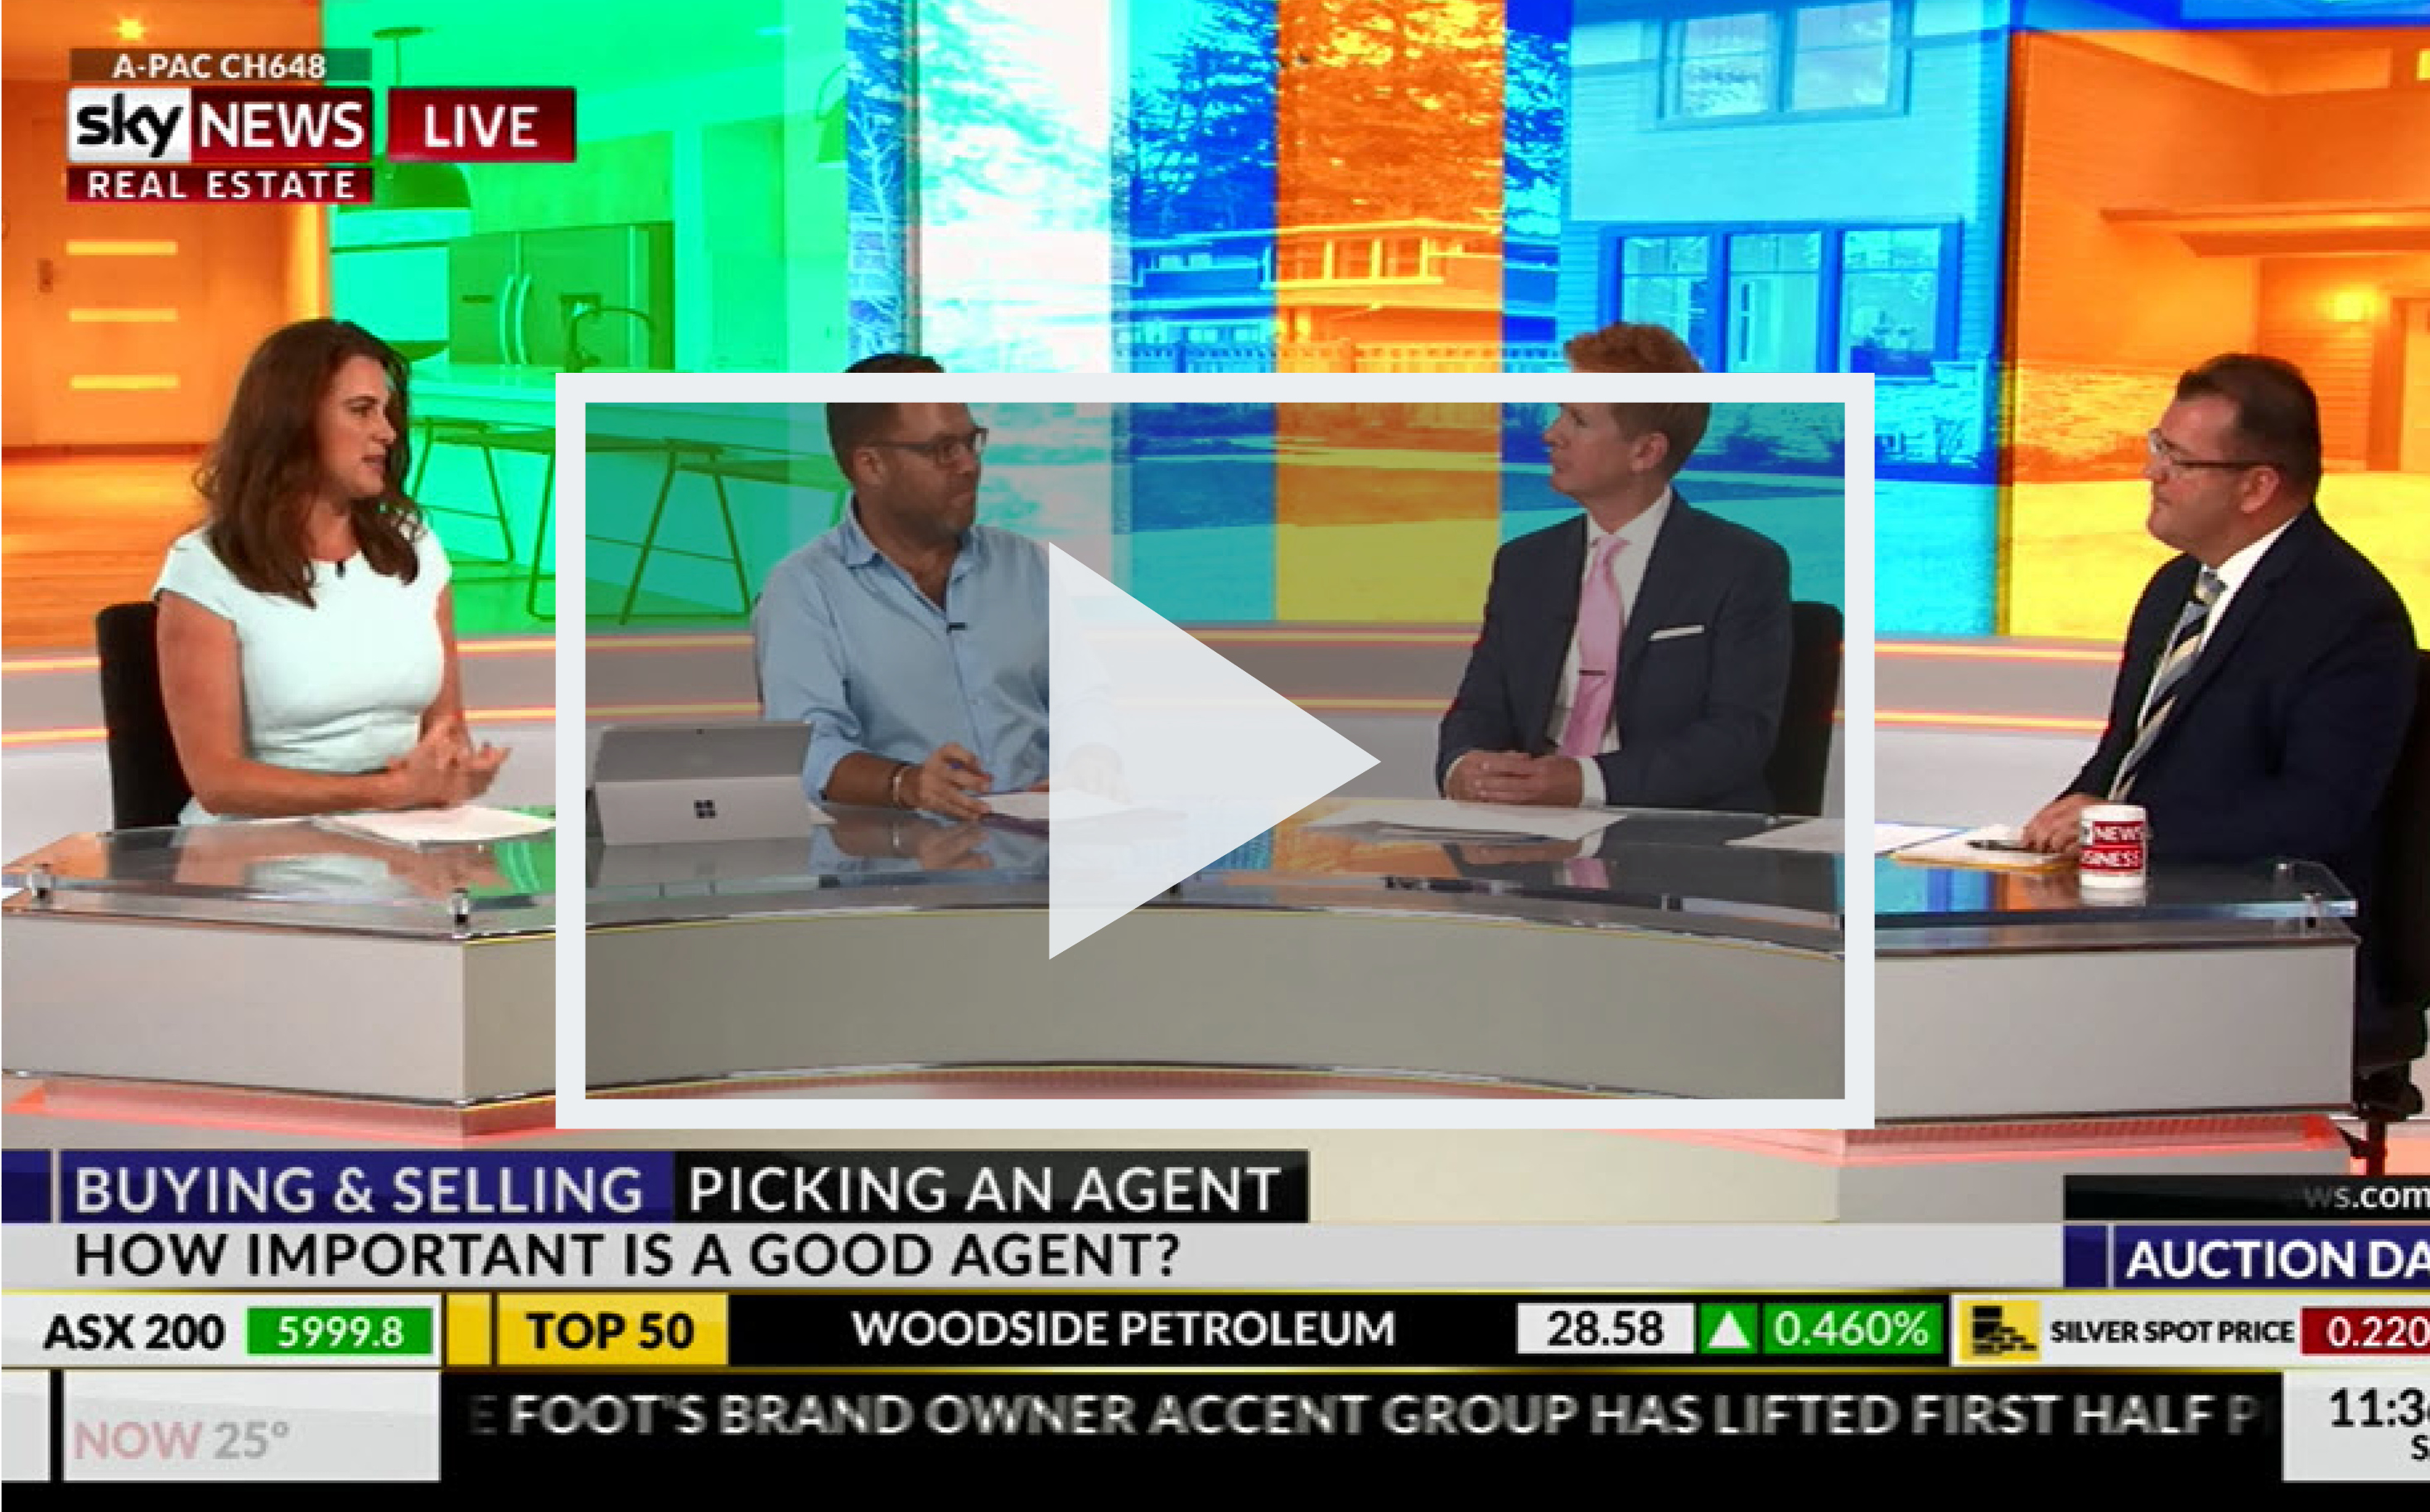 Sky news real estate, property news, property, real estate, sydney property, inner west real estate, buying property, choosing an agent, property investment